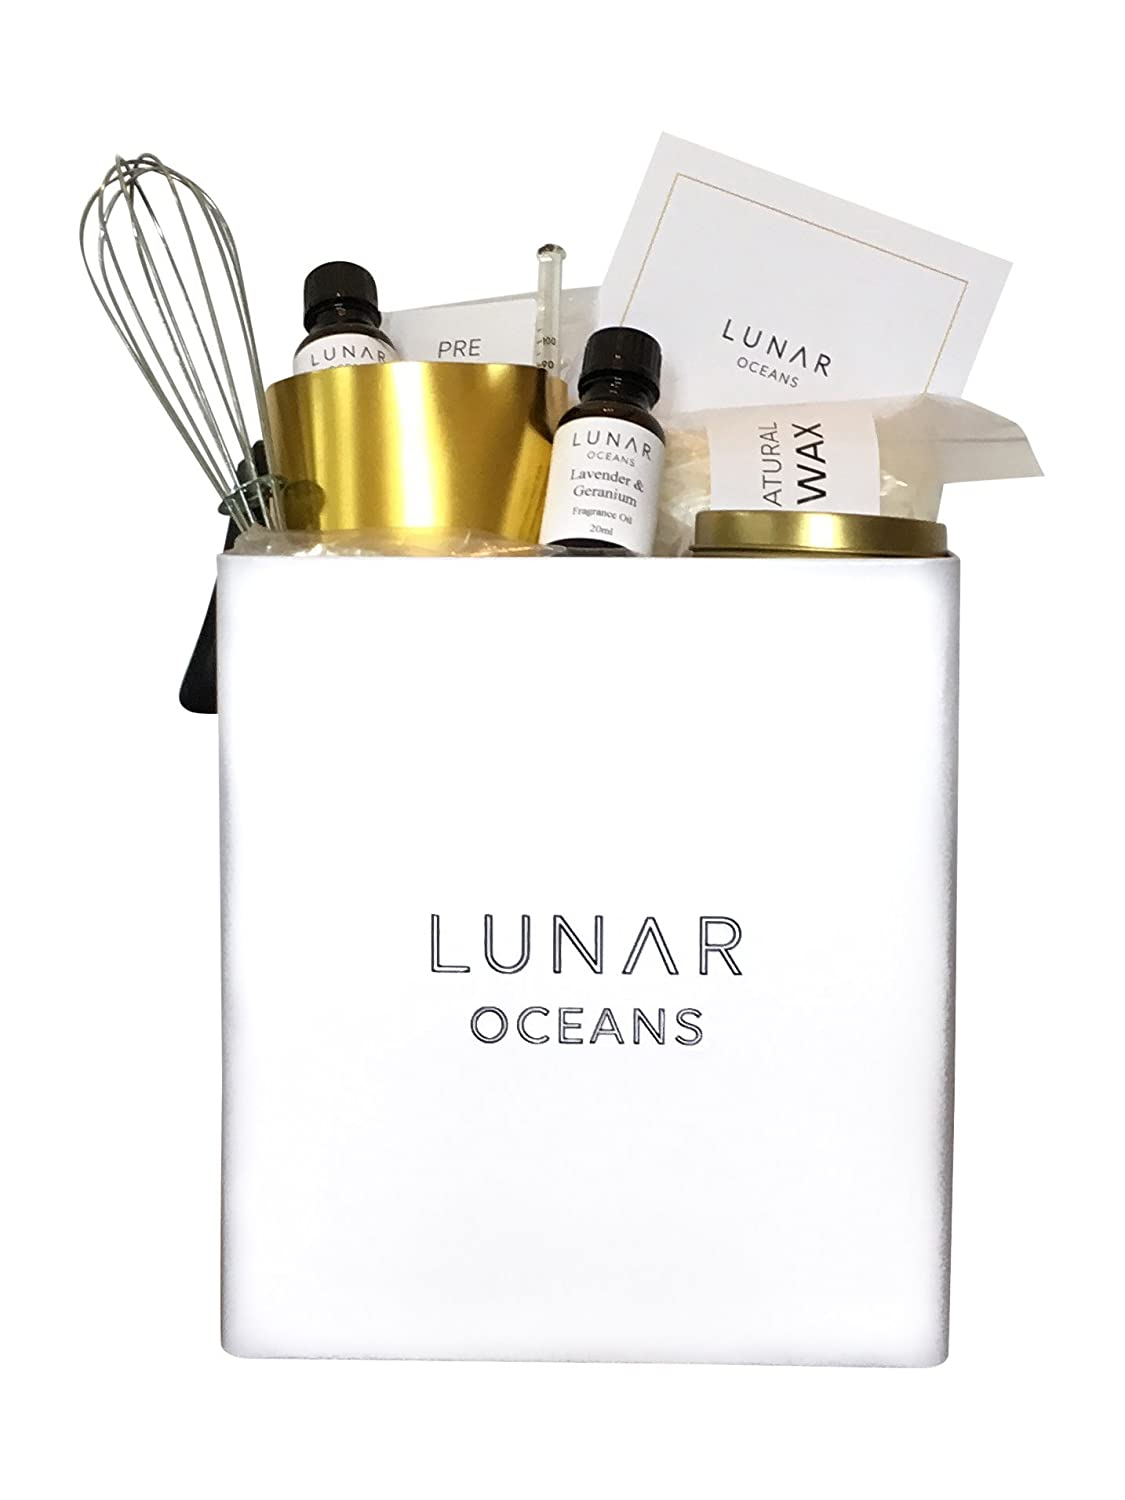 Scented Candle Making Kit by Lunar Oceans (Amber and Lavender & Geranium)